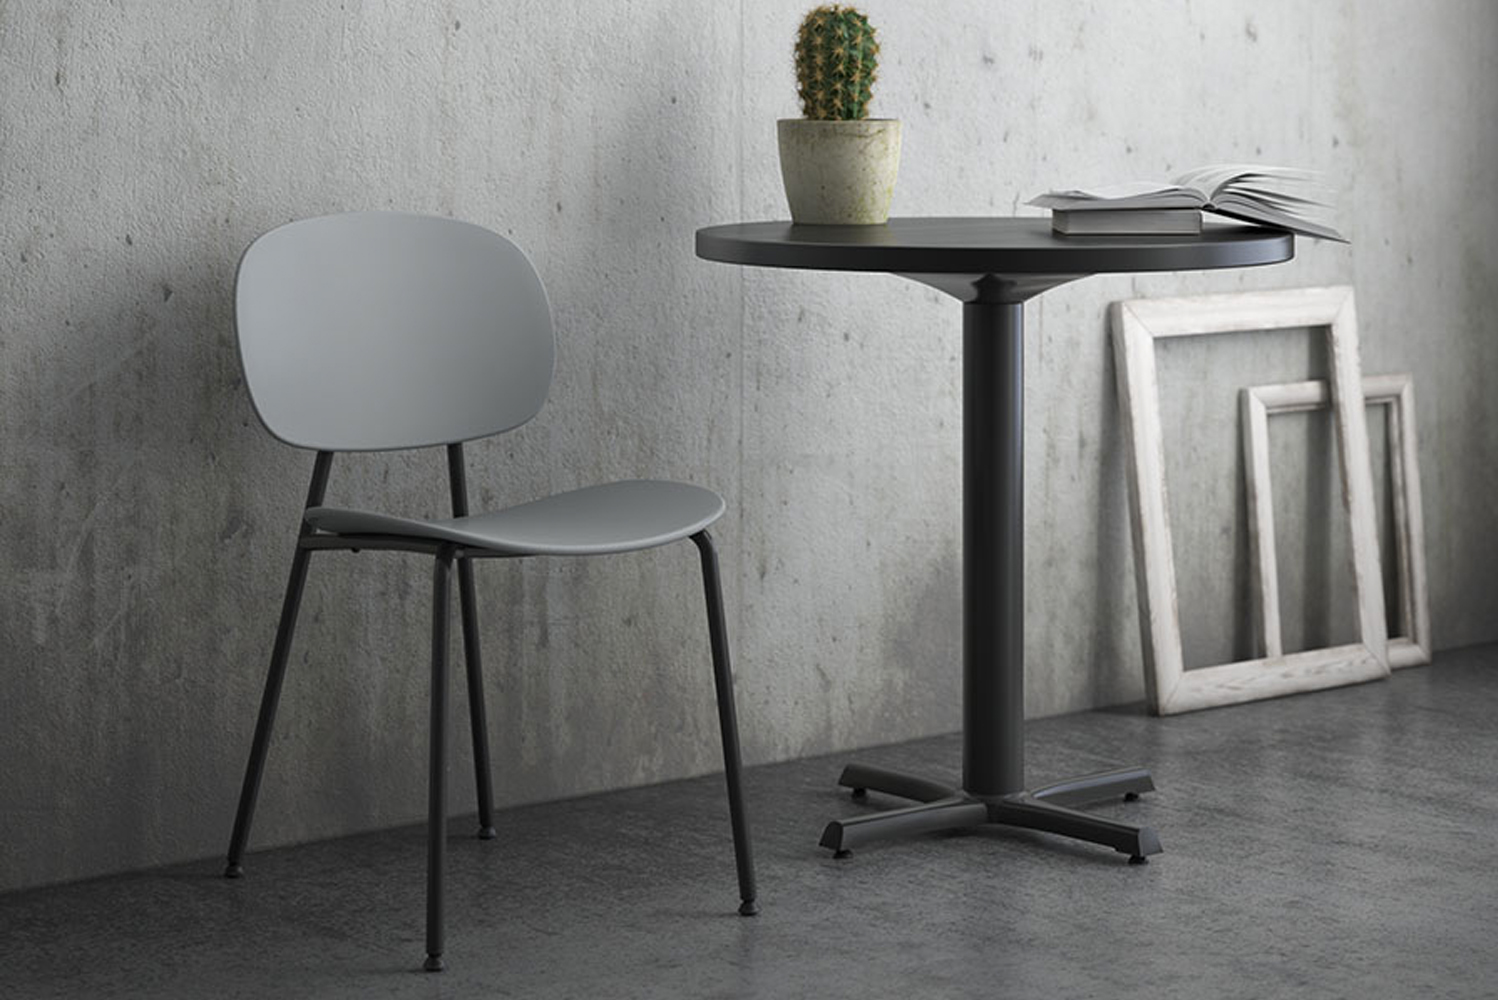 Community Furniture launched the Bryn seating collection.